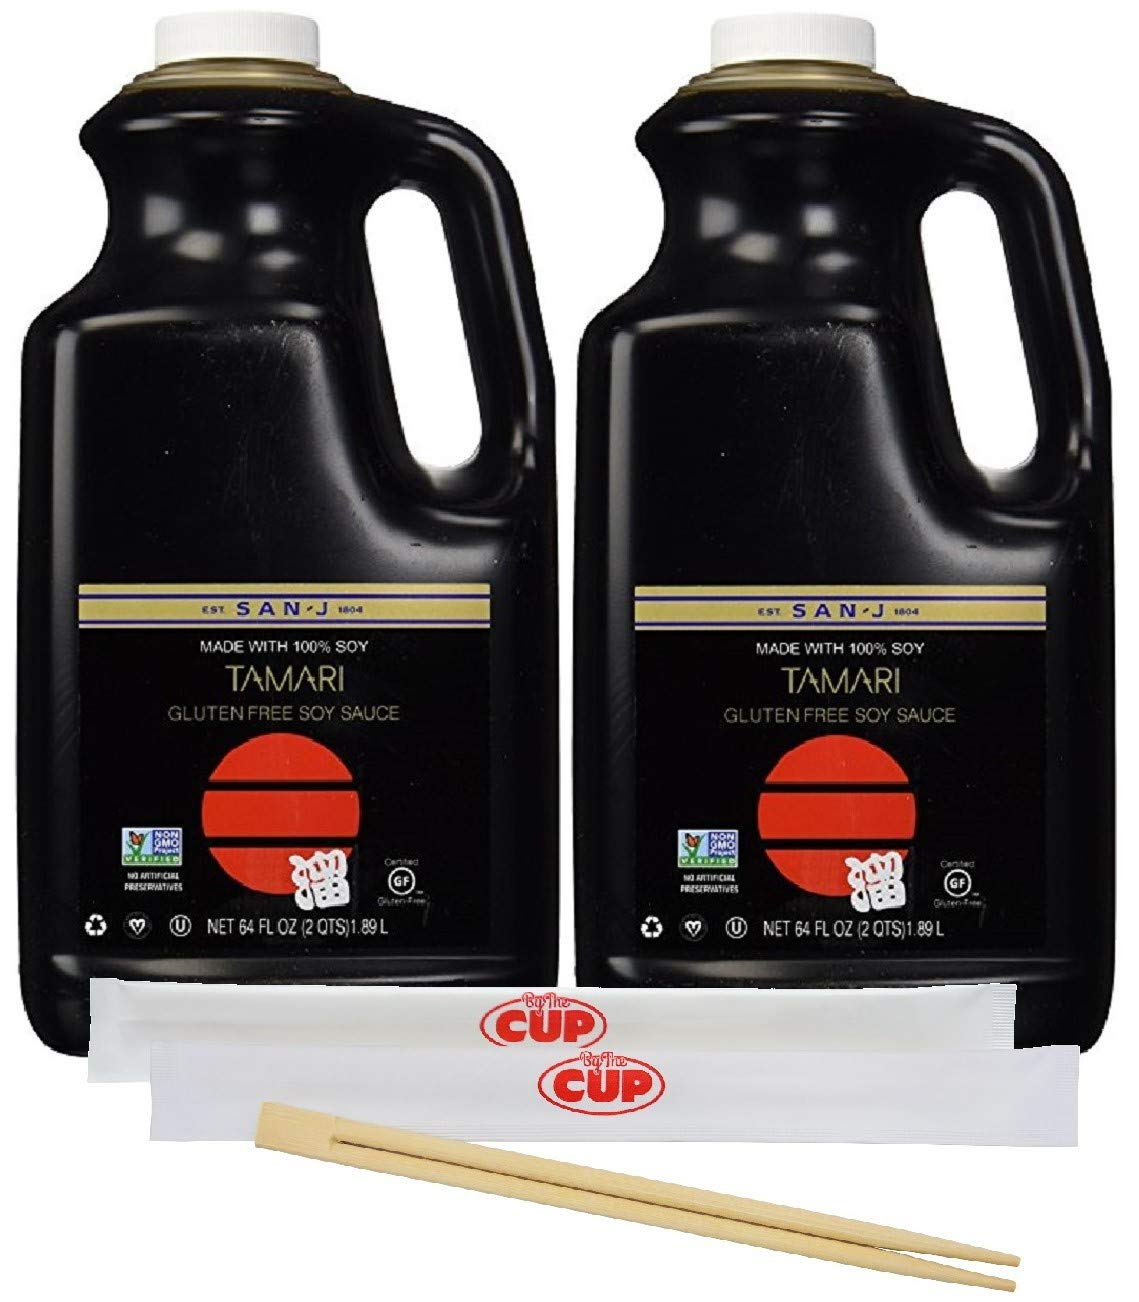 San-J Tamari Gluten-Free Black Label Soy Sauce, 64 Ounce Bottle (Pack of 2) - with 2 Packs of Chopsticks by By The Cup